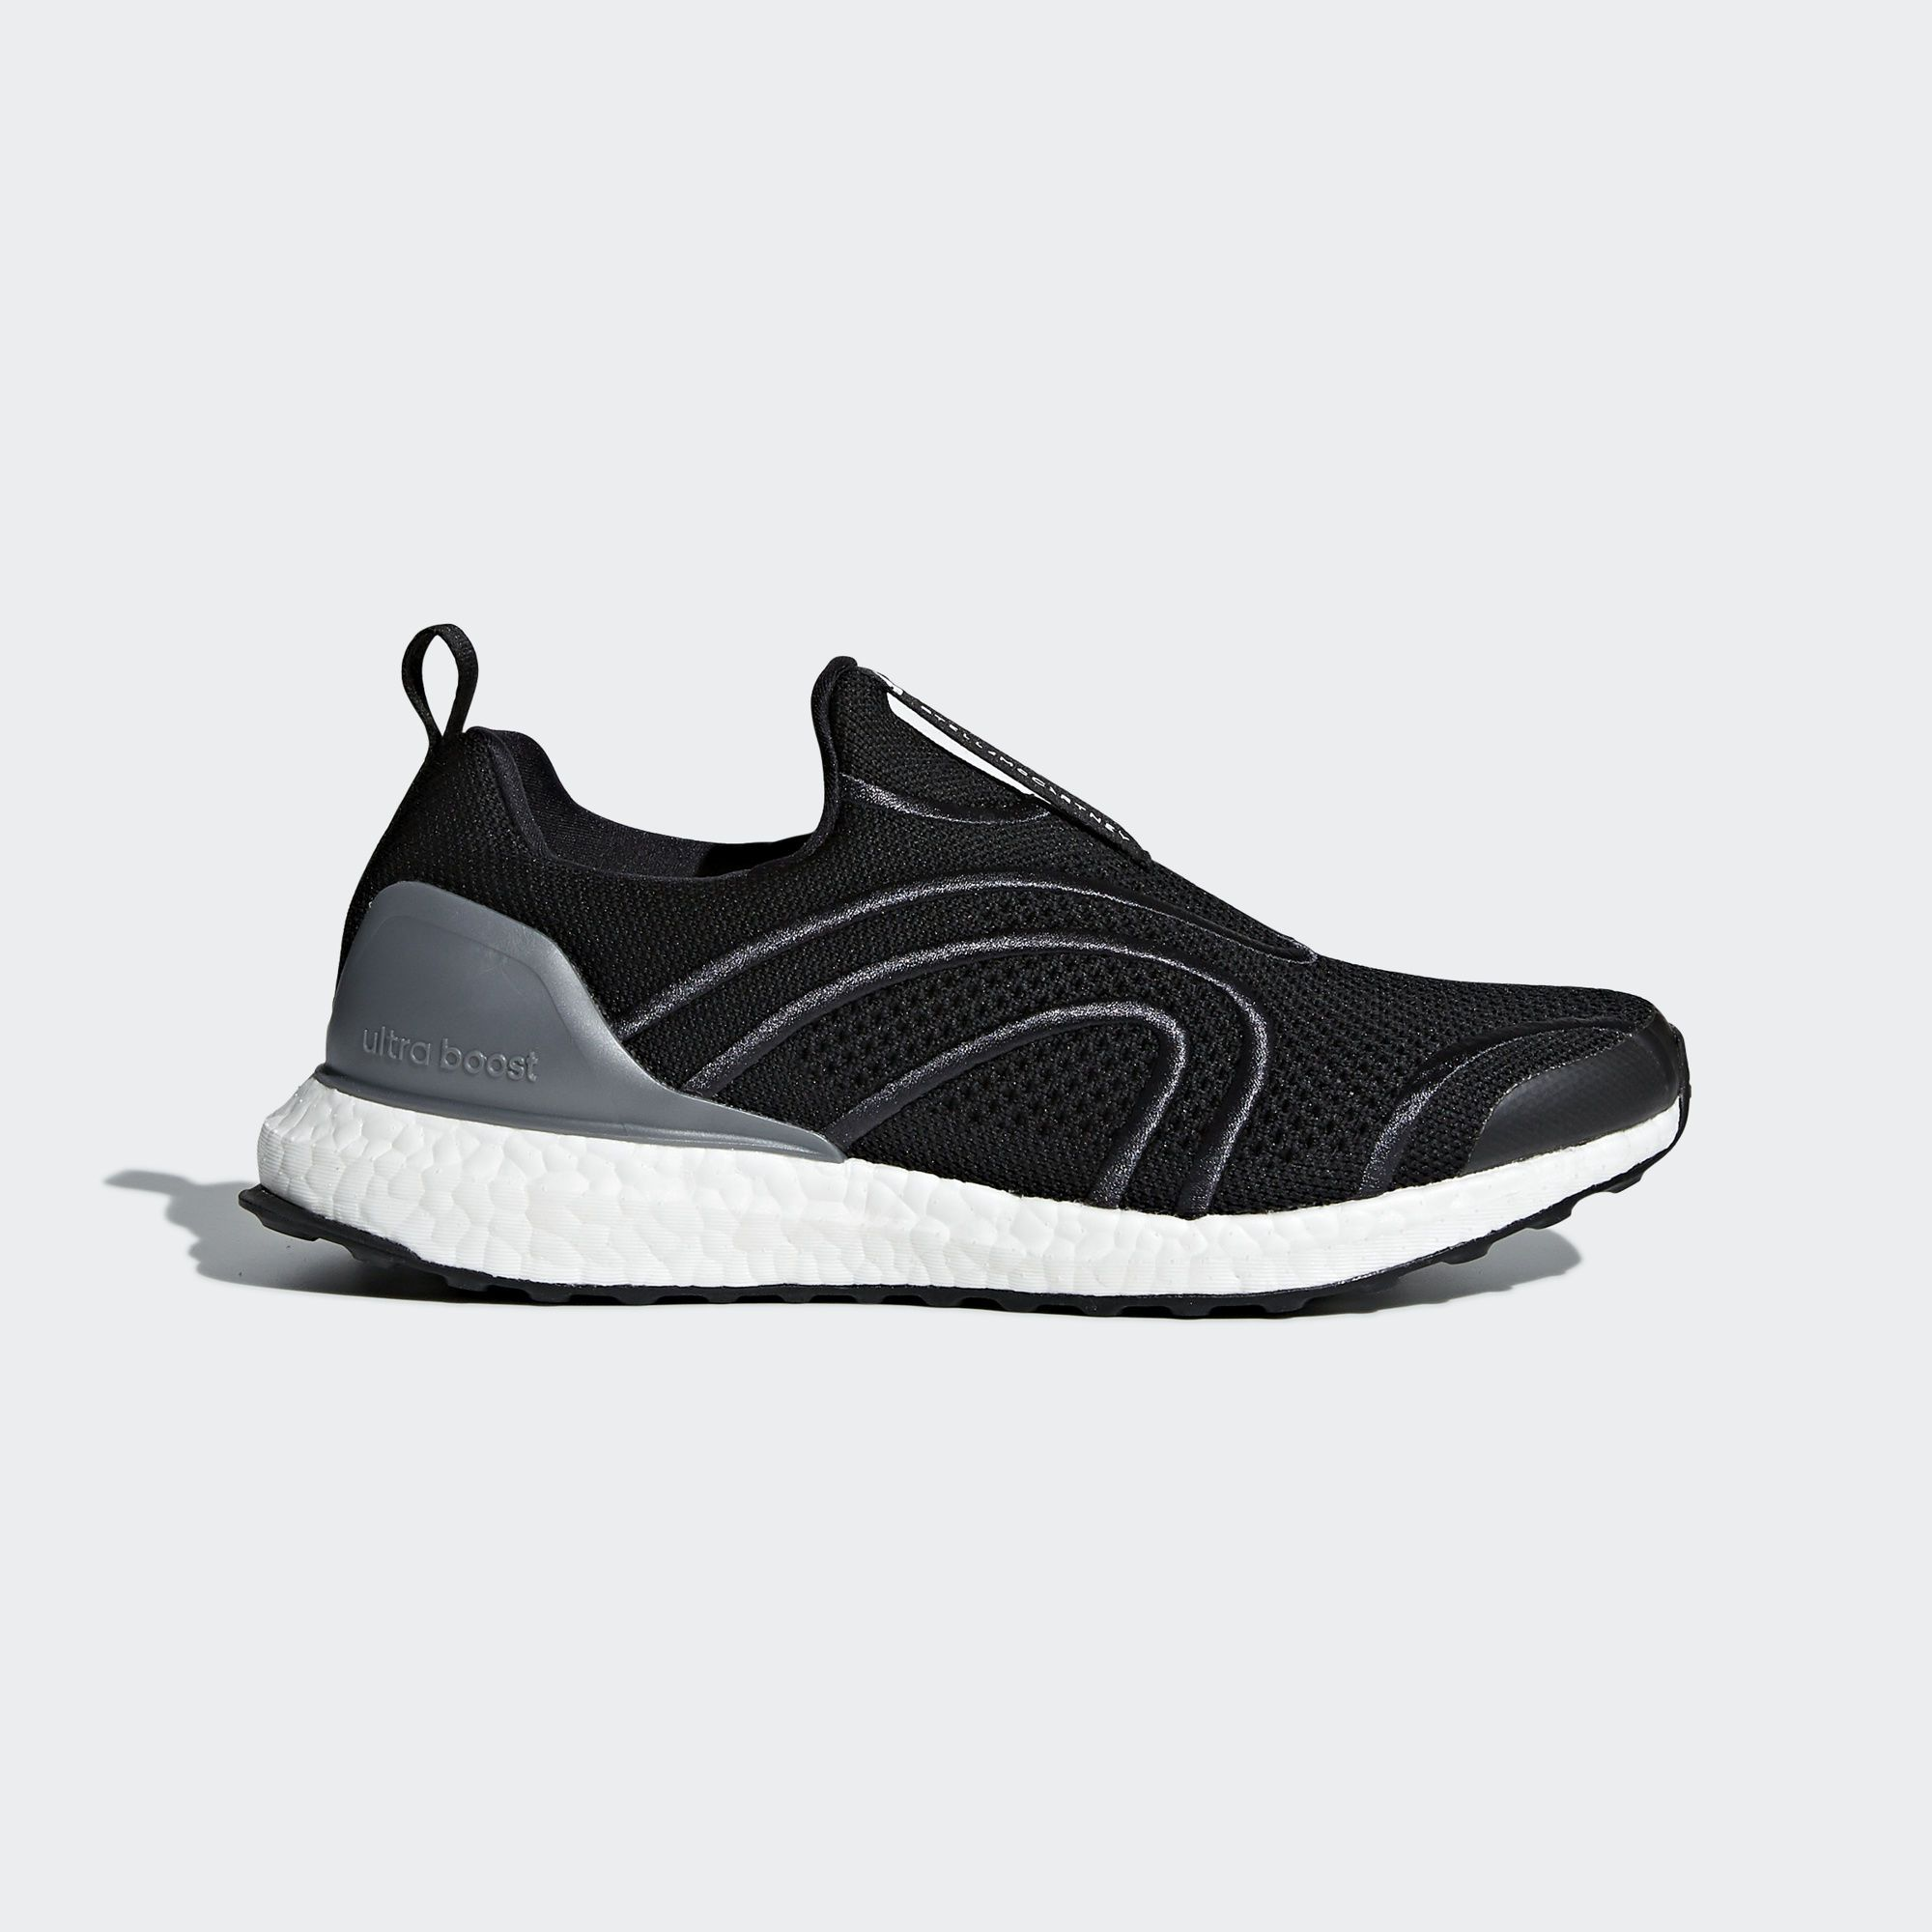 6fea1c87d139c Running Shoes · Trainers · Black Loafers · Embroidered details give a  sophisticated look to the adidas by Stella McCartney Ultraboost Uncaged  Shoes.